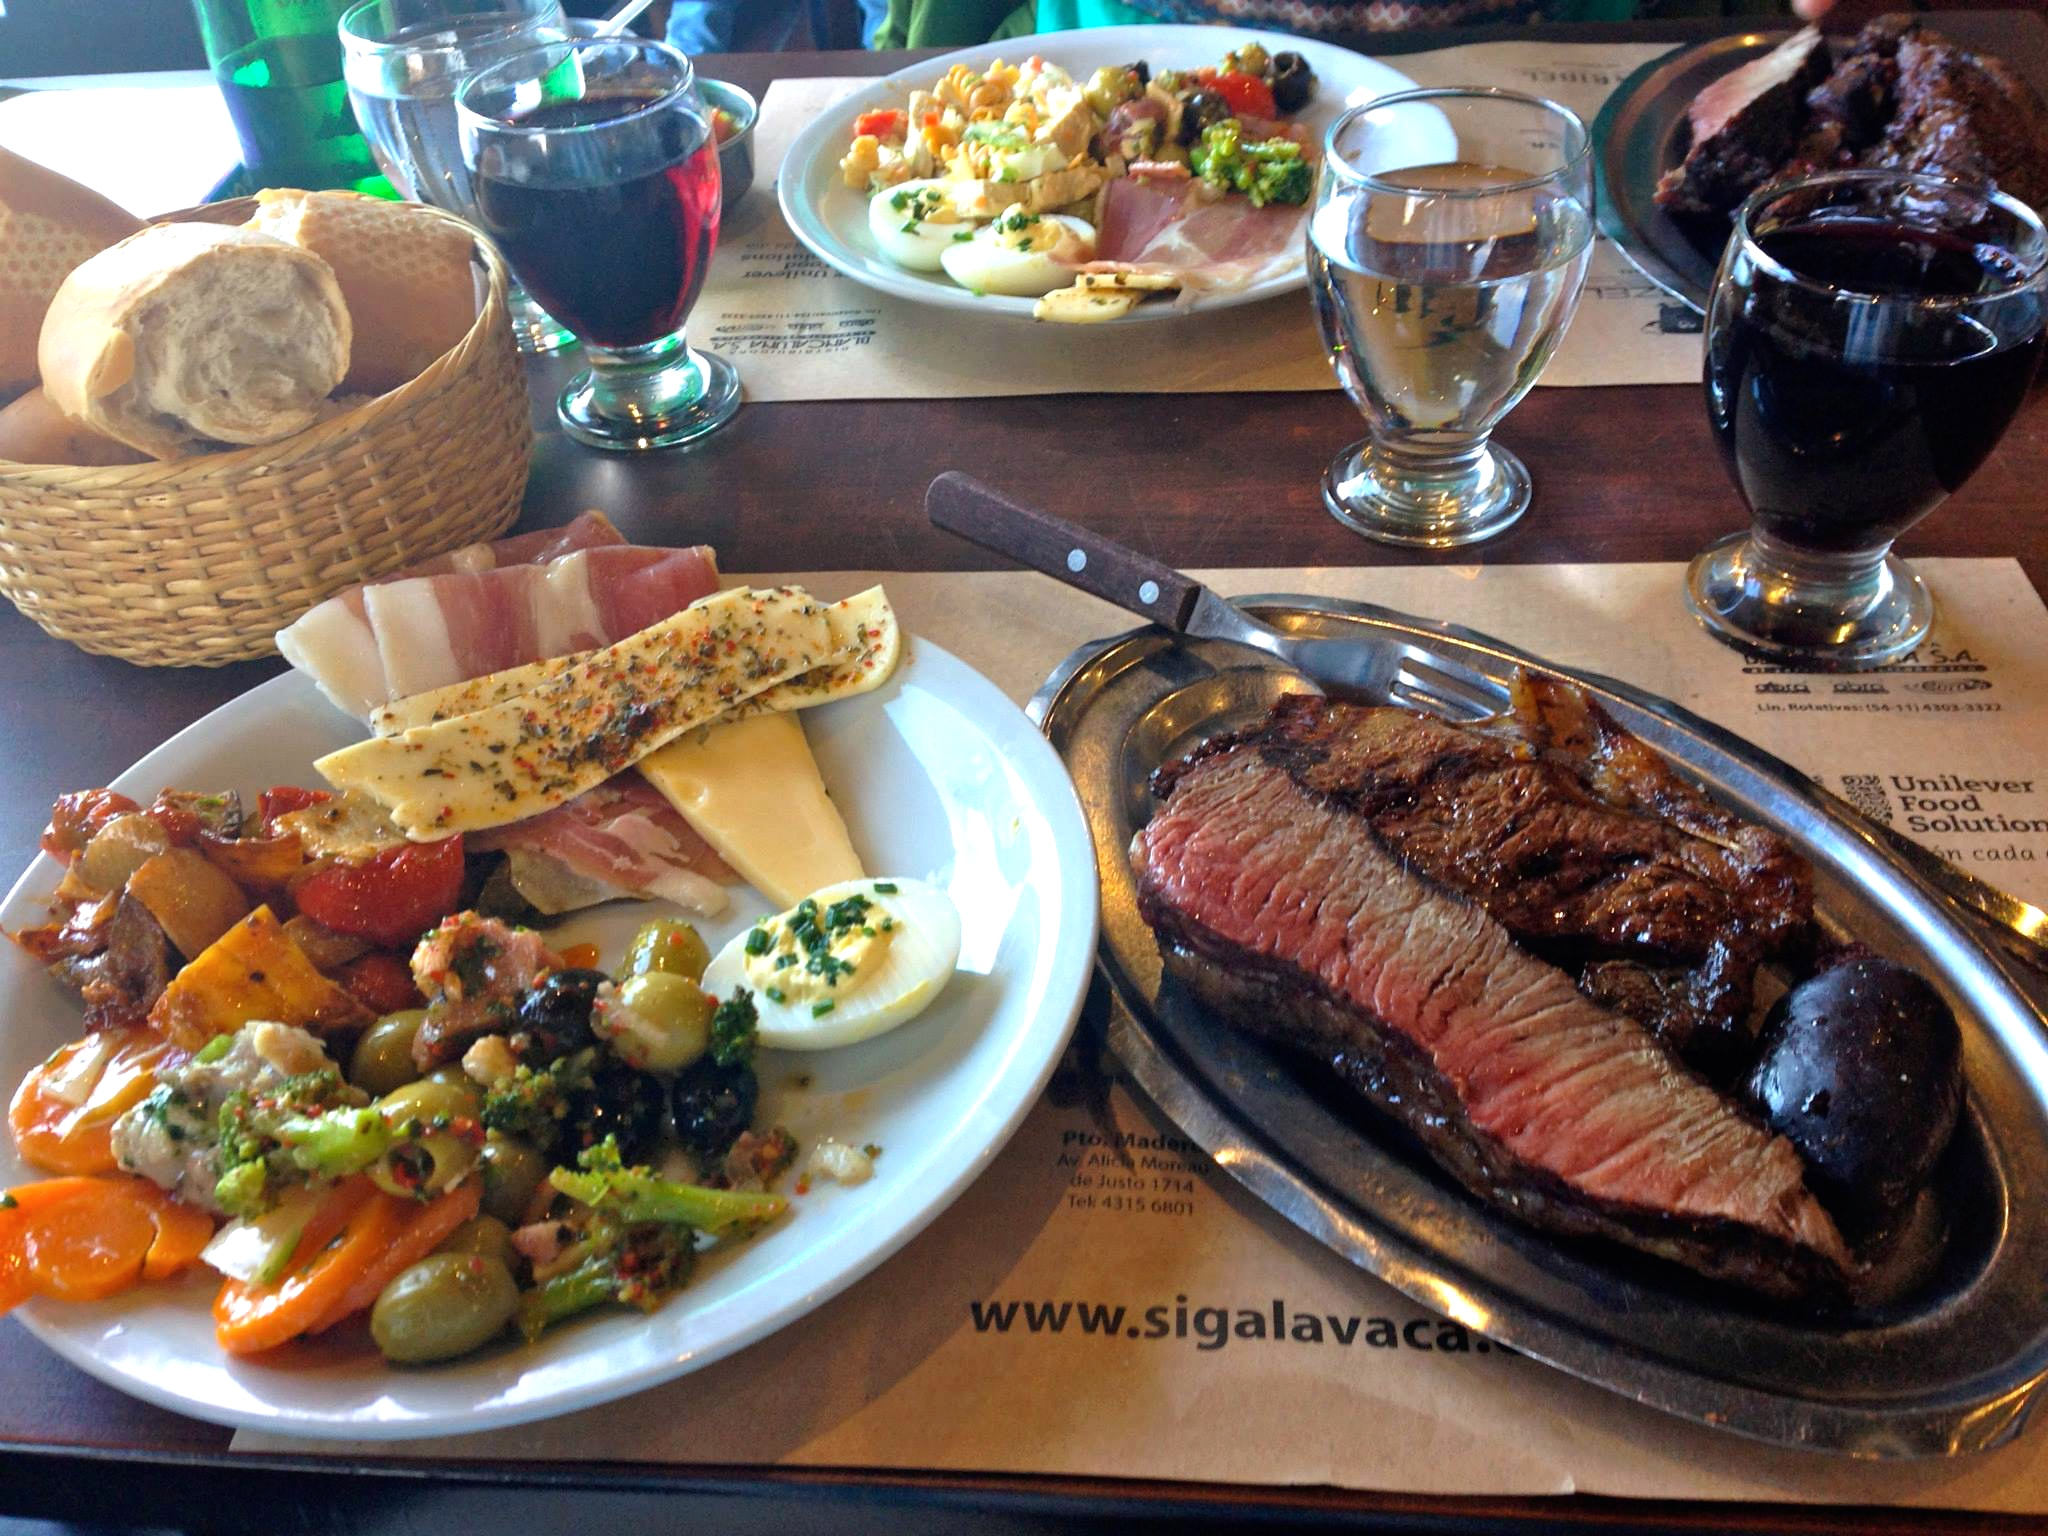 Red meat & red wine  - everyday Argentina diet